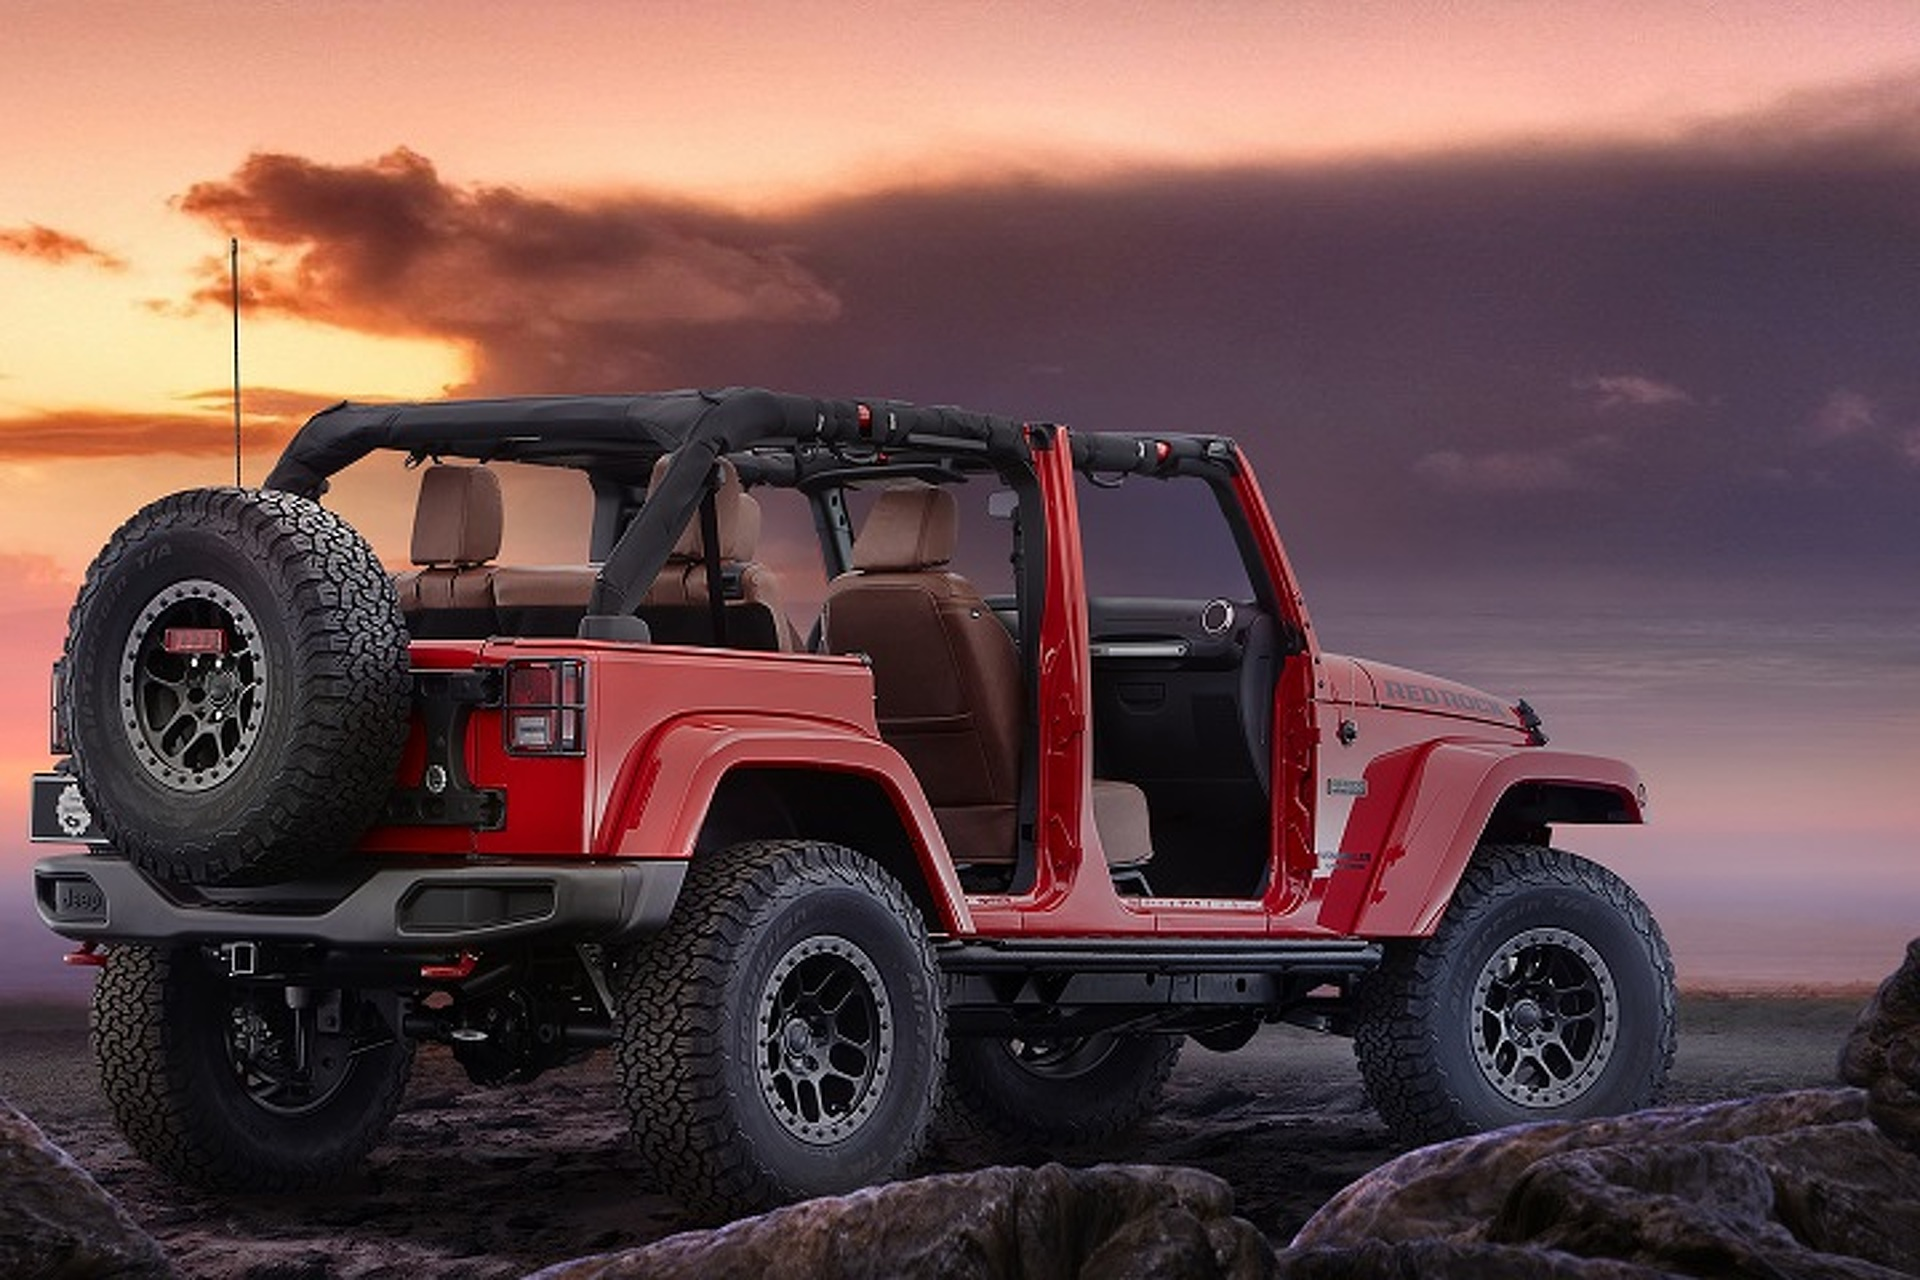 Jeep Red Rock Wrangler Rubicon Is Ready To Conquer Moab